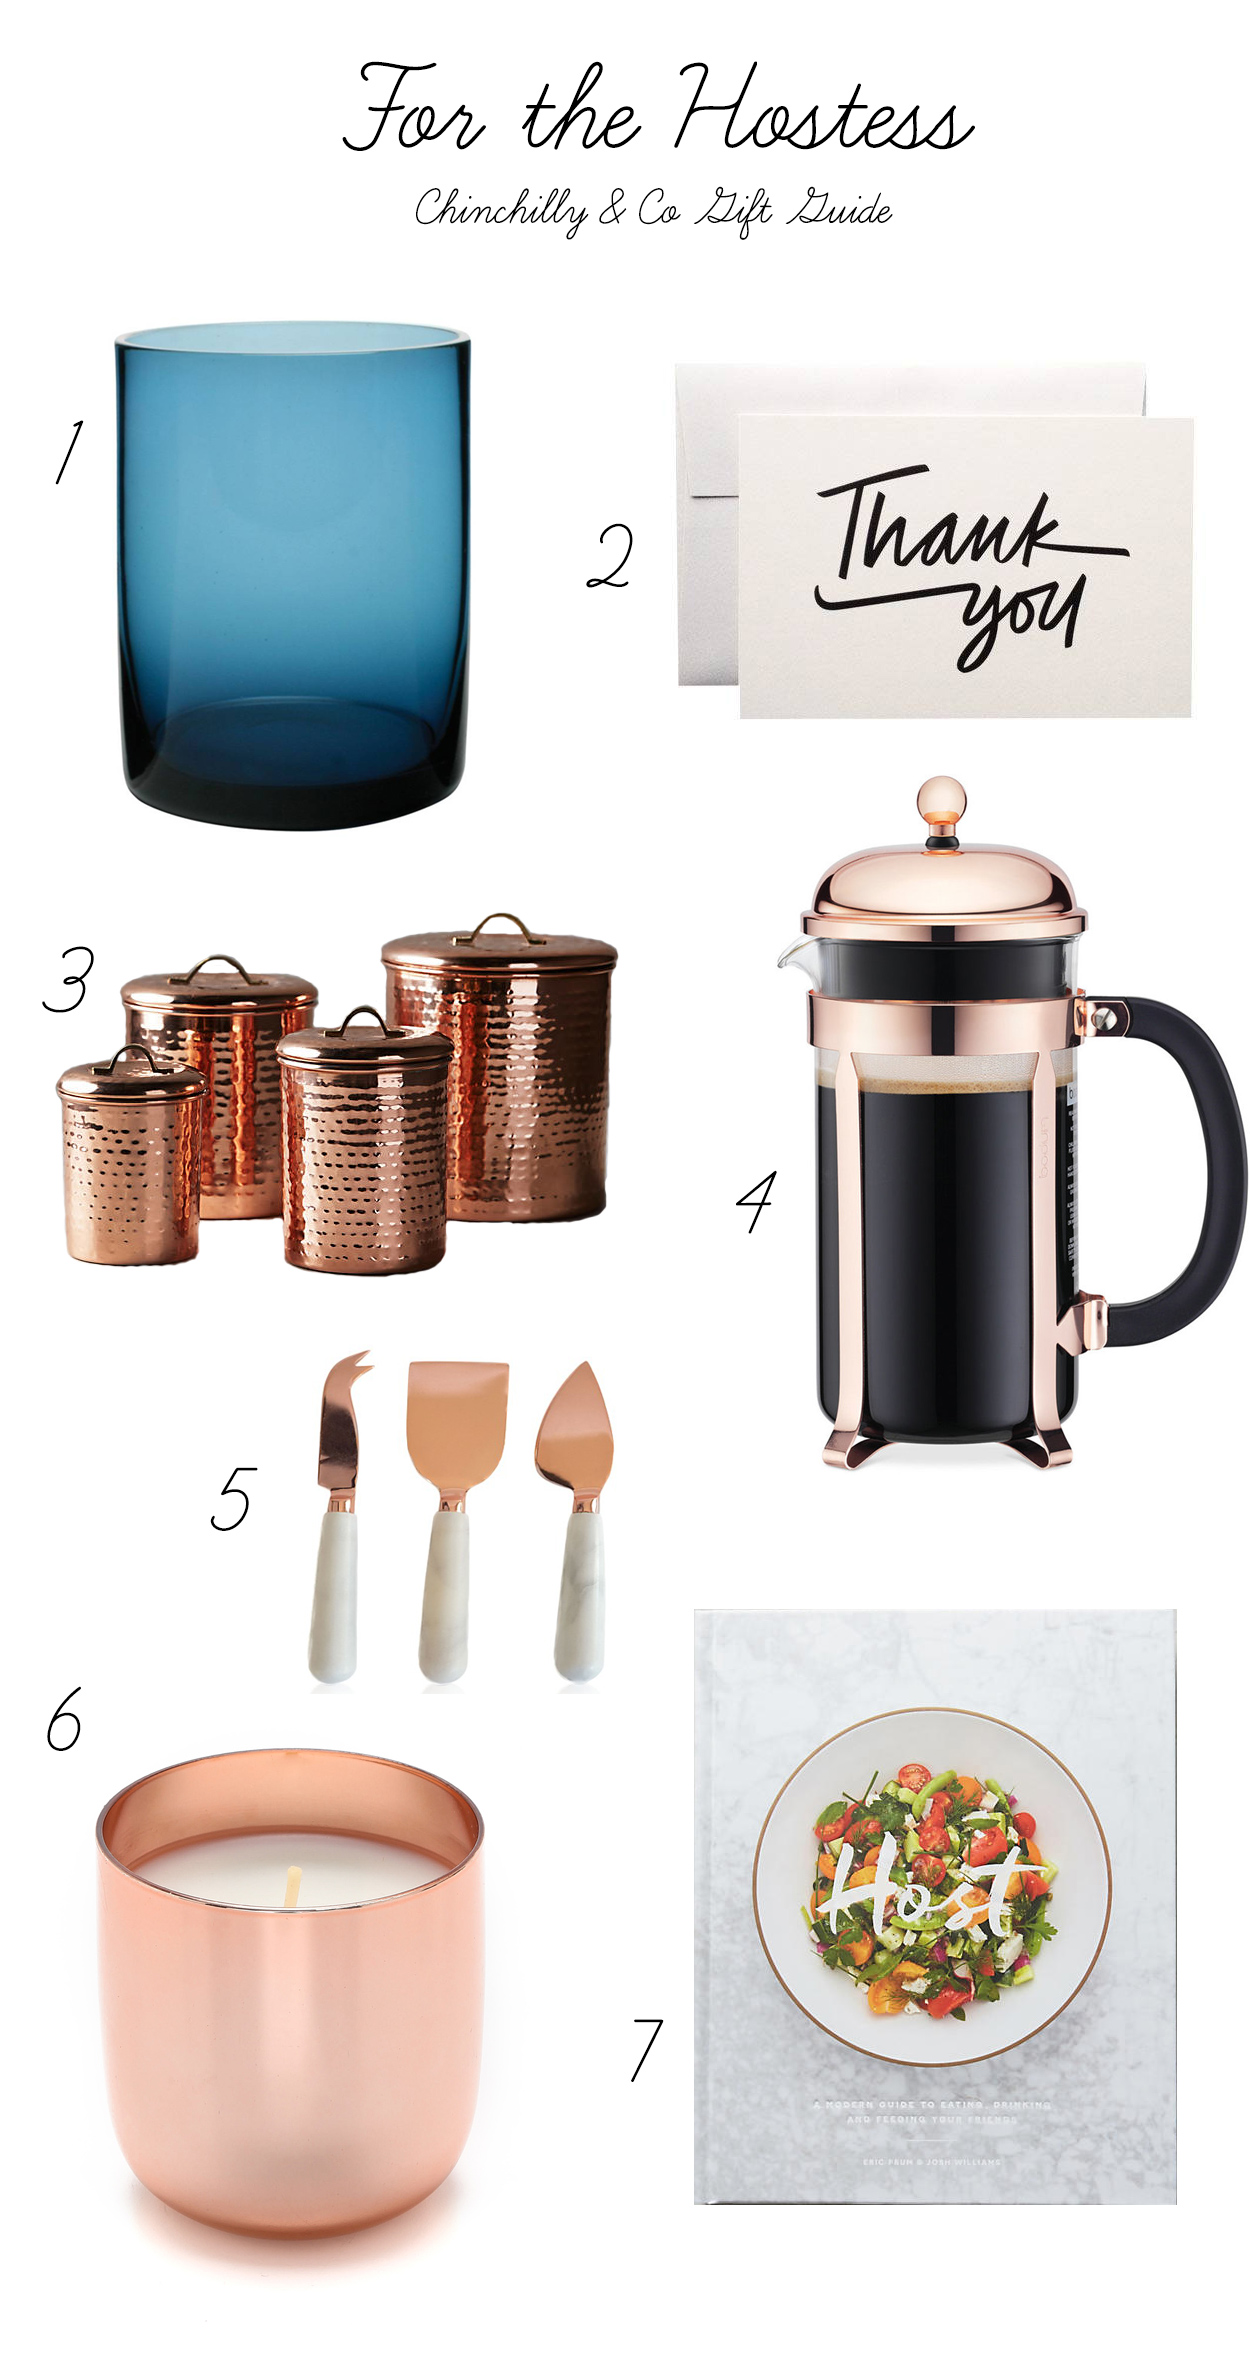 giftguide-for-the-hostess